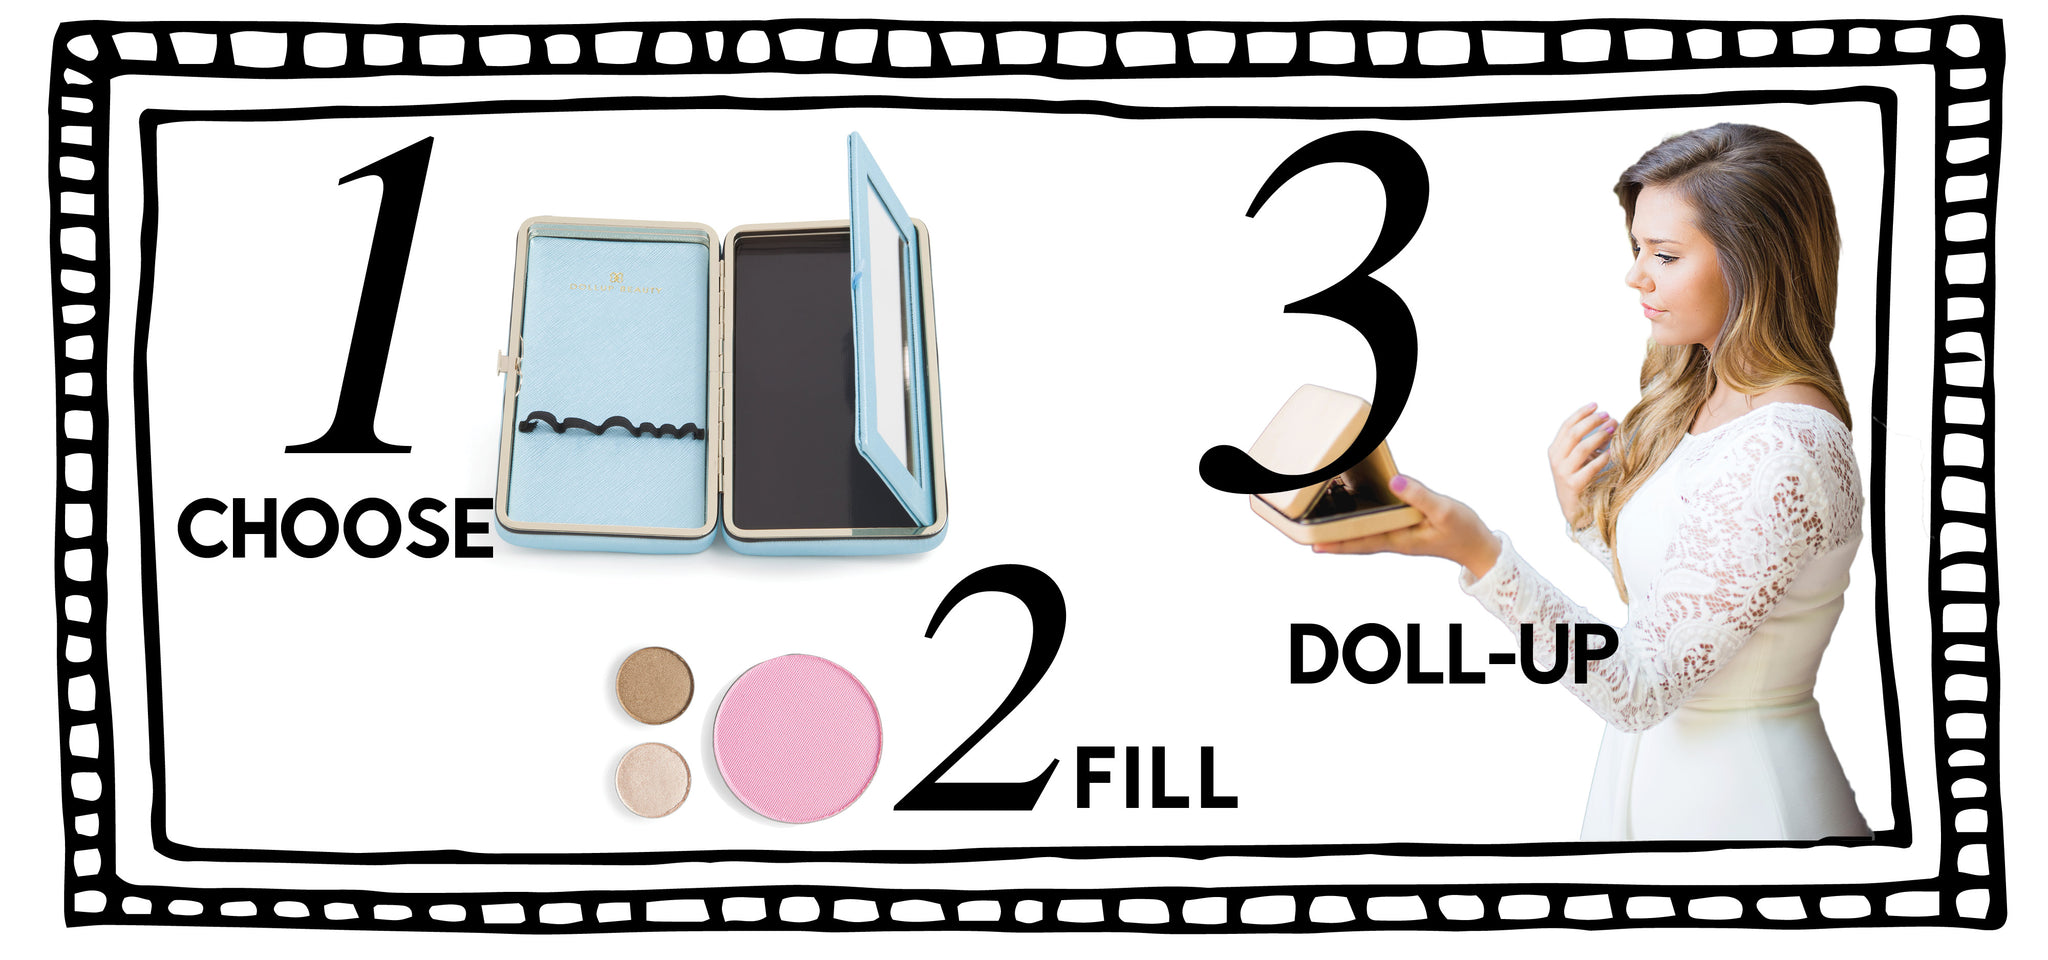 Customize a makeup kit with pan only refill eyeshadows, powder, blush, concealer foundation and amore.  Our Dollup Case Makeup organizer is complete with an empty magnetic palette, elastic holding bands to secure beauty accessories and a fold down mirror for makeup vanity on the go or travel.